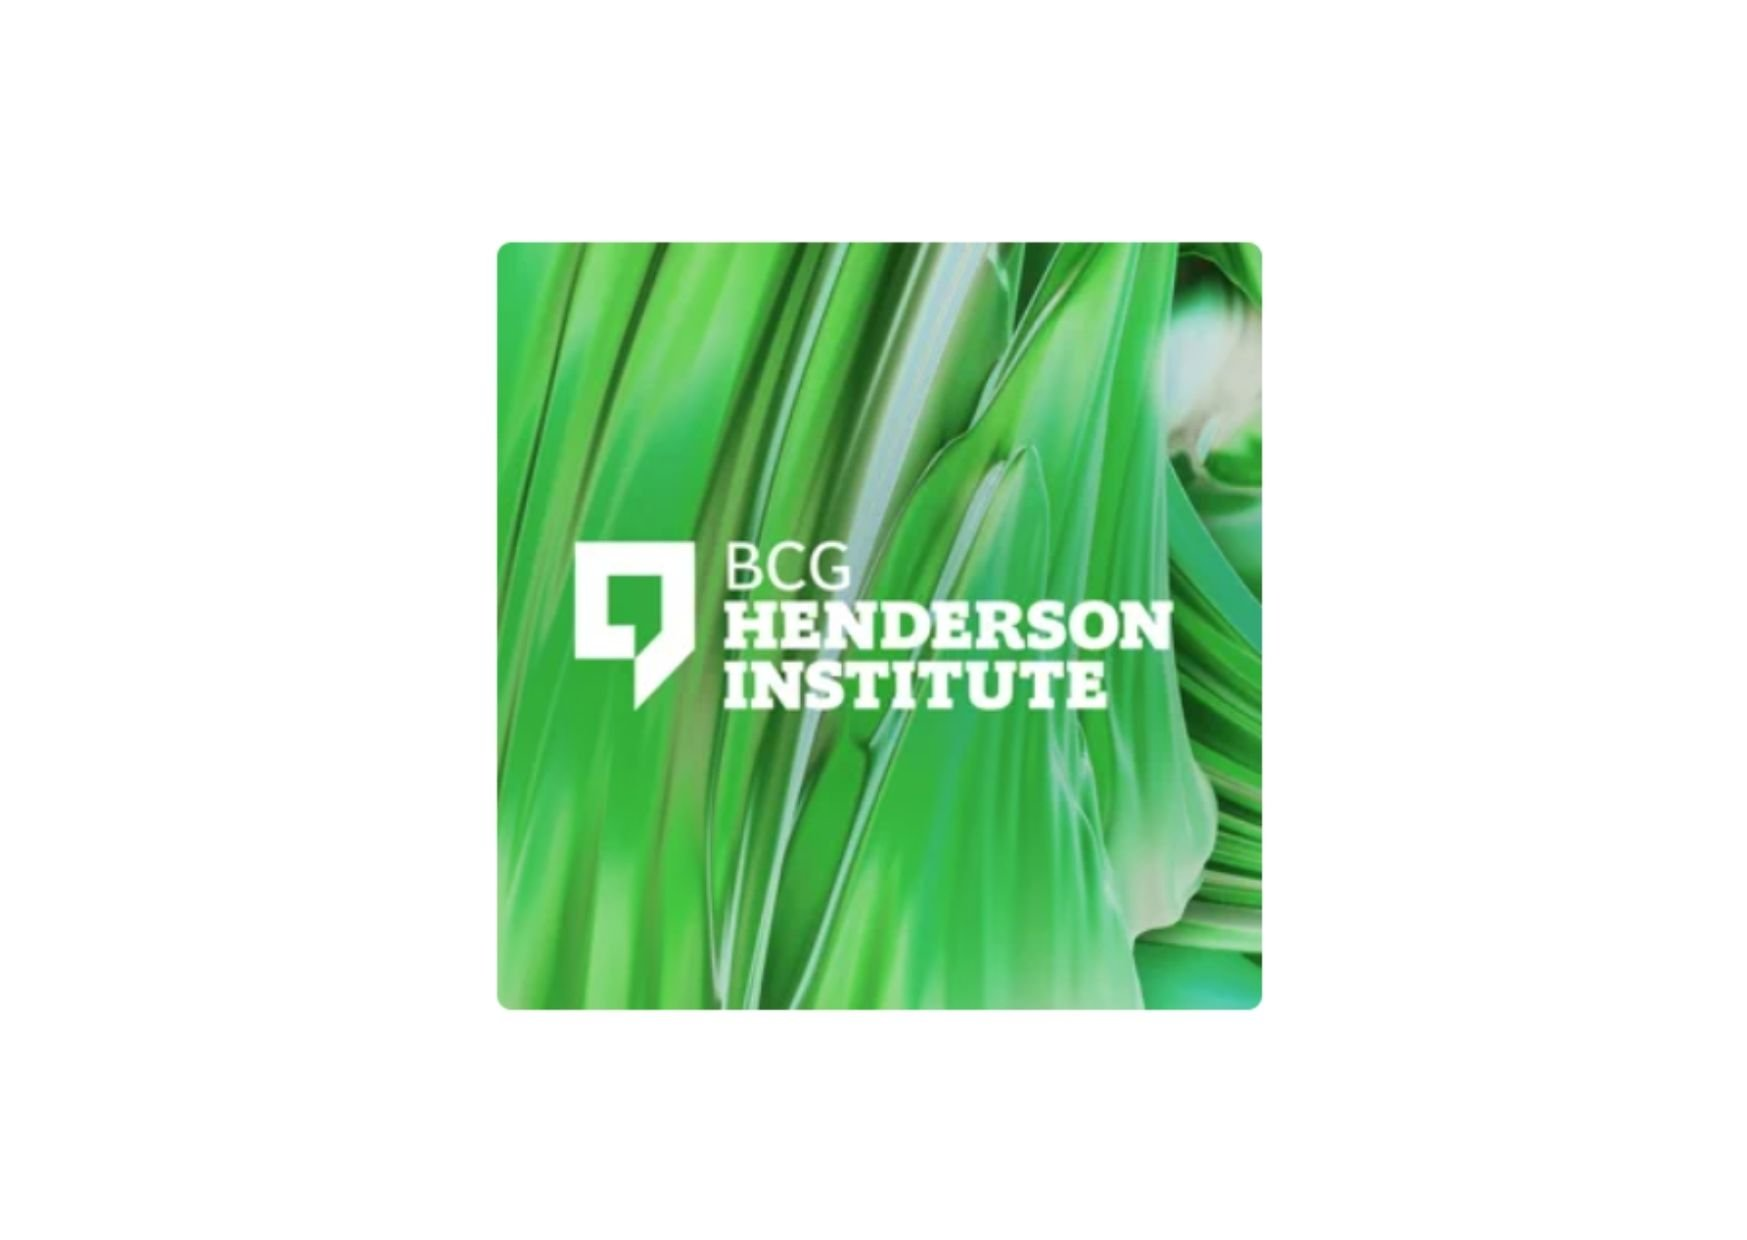 Noreena's Interview with Martin Reeves, BCG Henderson Institute